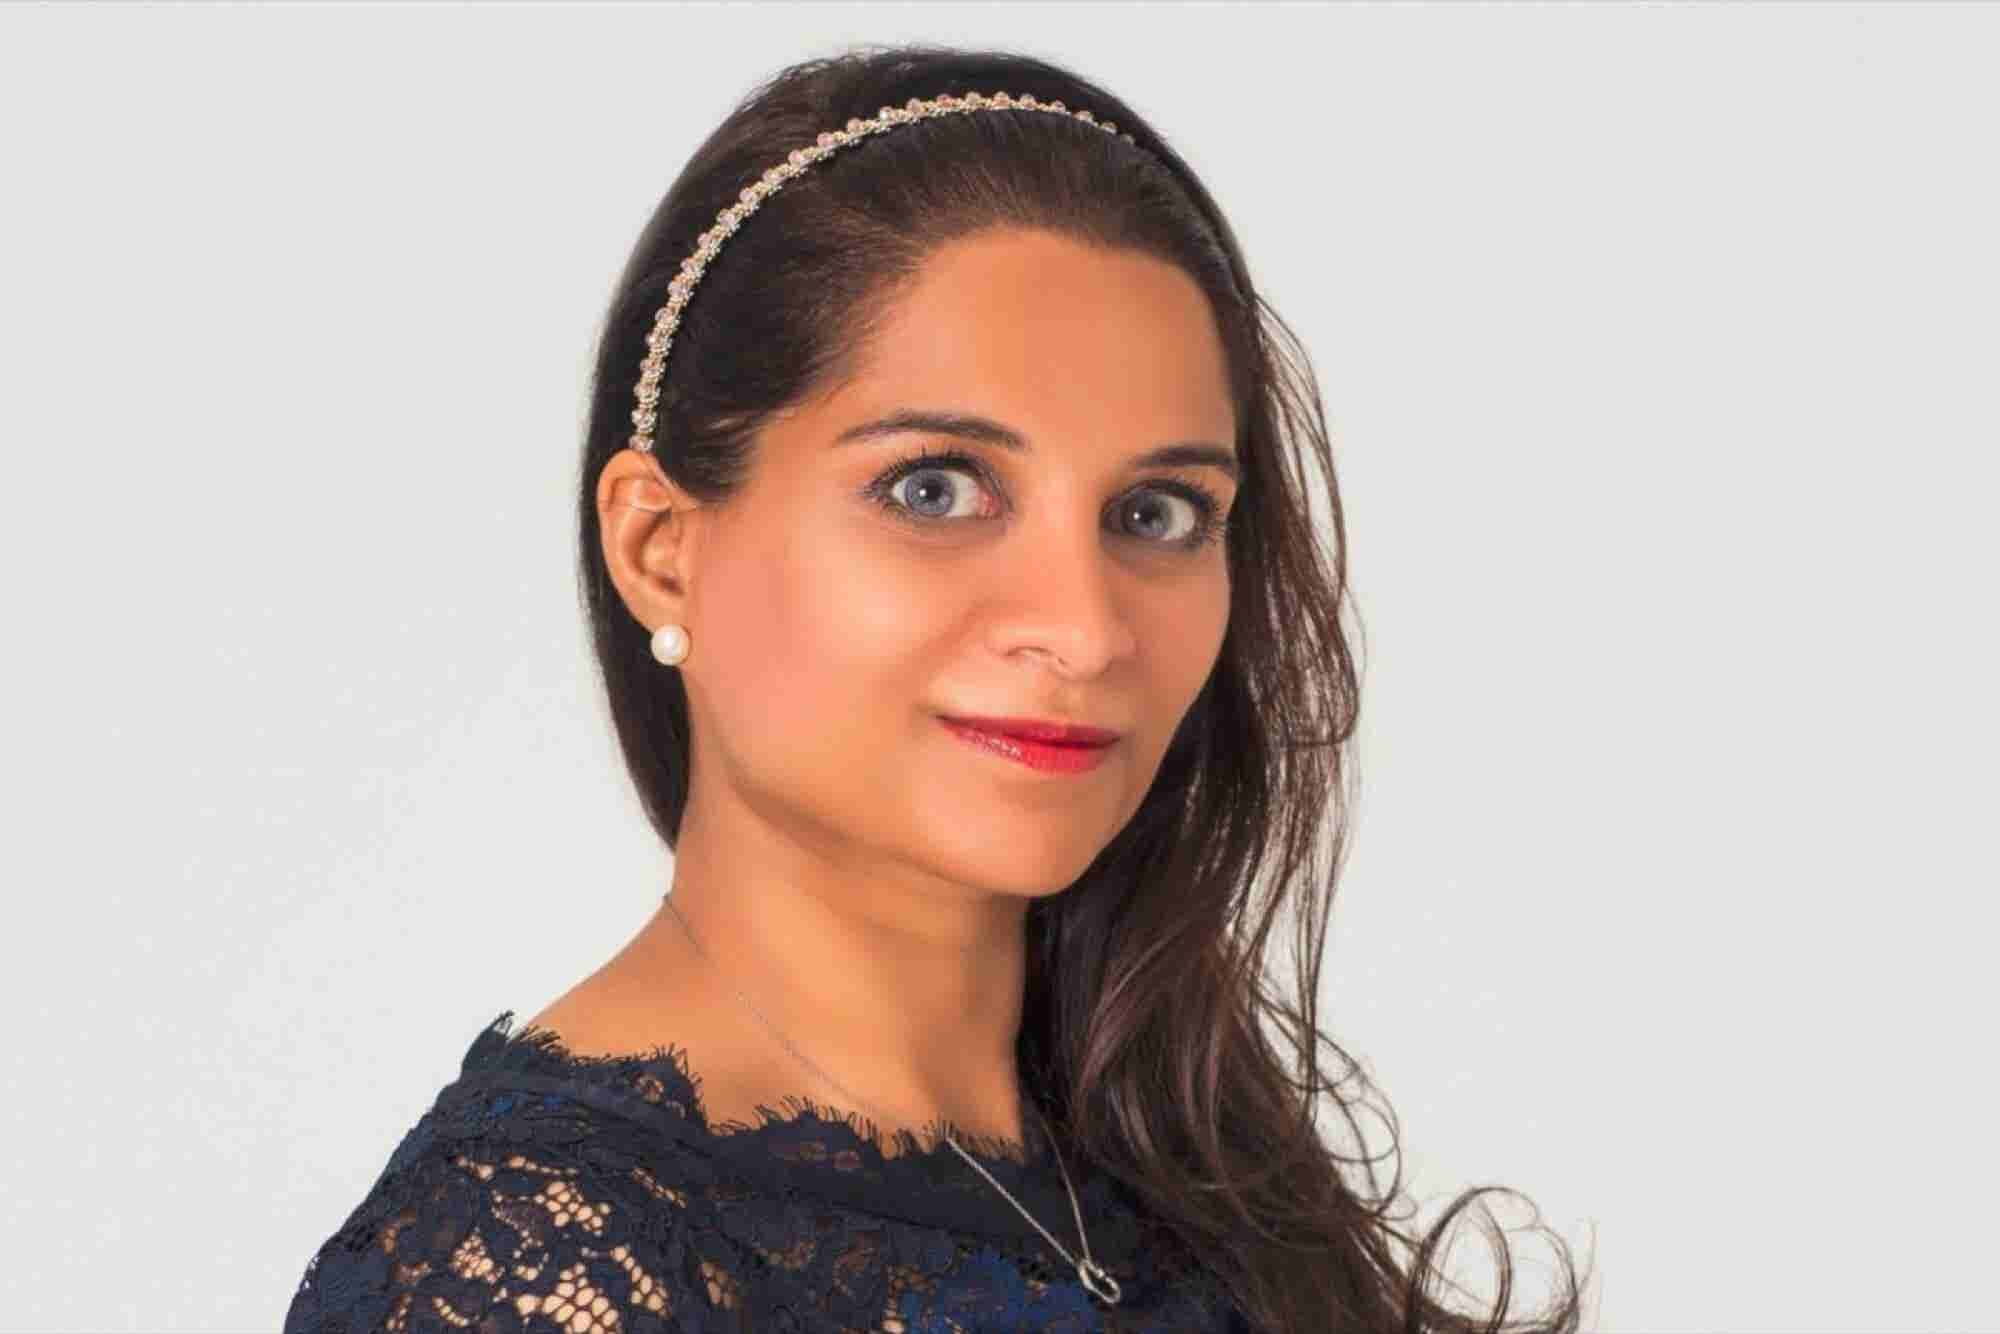 Mind Your Manners: Institute of Modern Etiquette Founder Siama Qadar Explains How